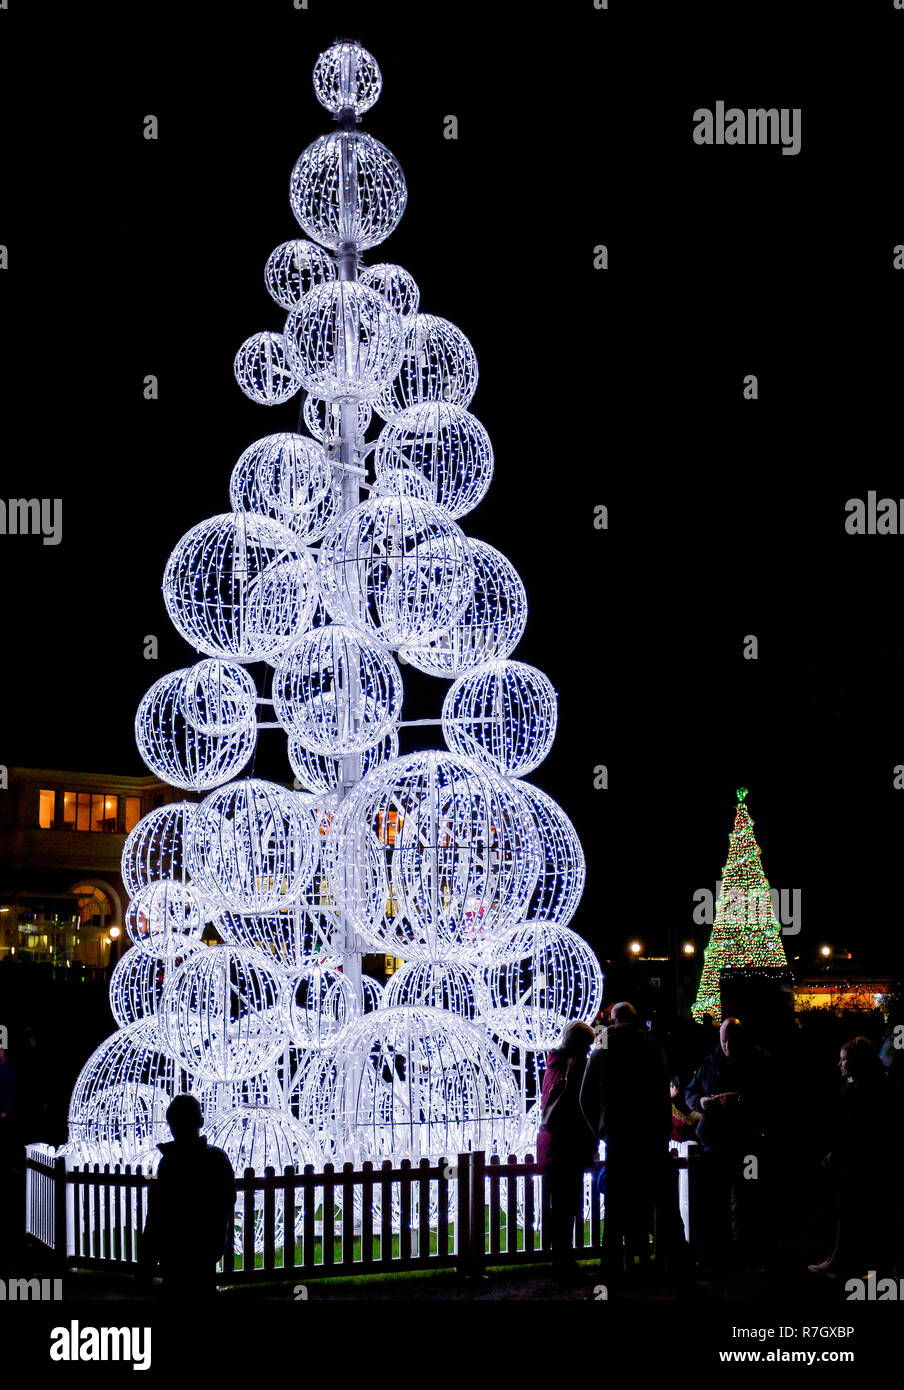 Outdoor Light Up Christmas Tree.Outdoor Light Up Christmas Tree